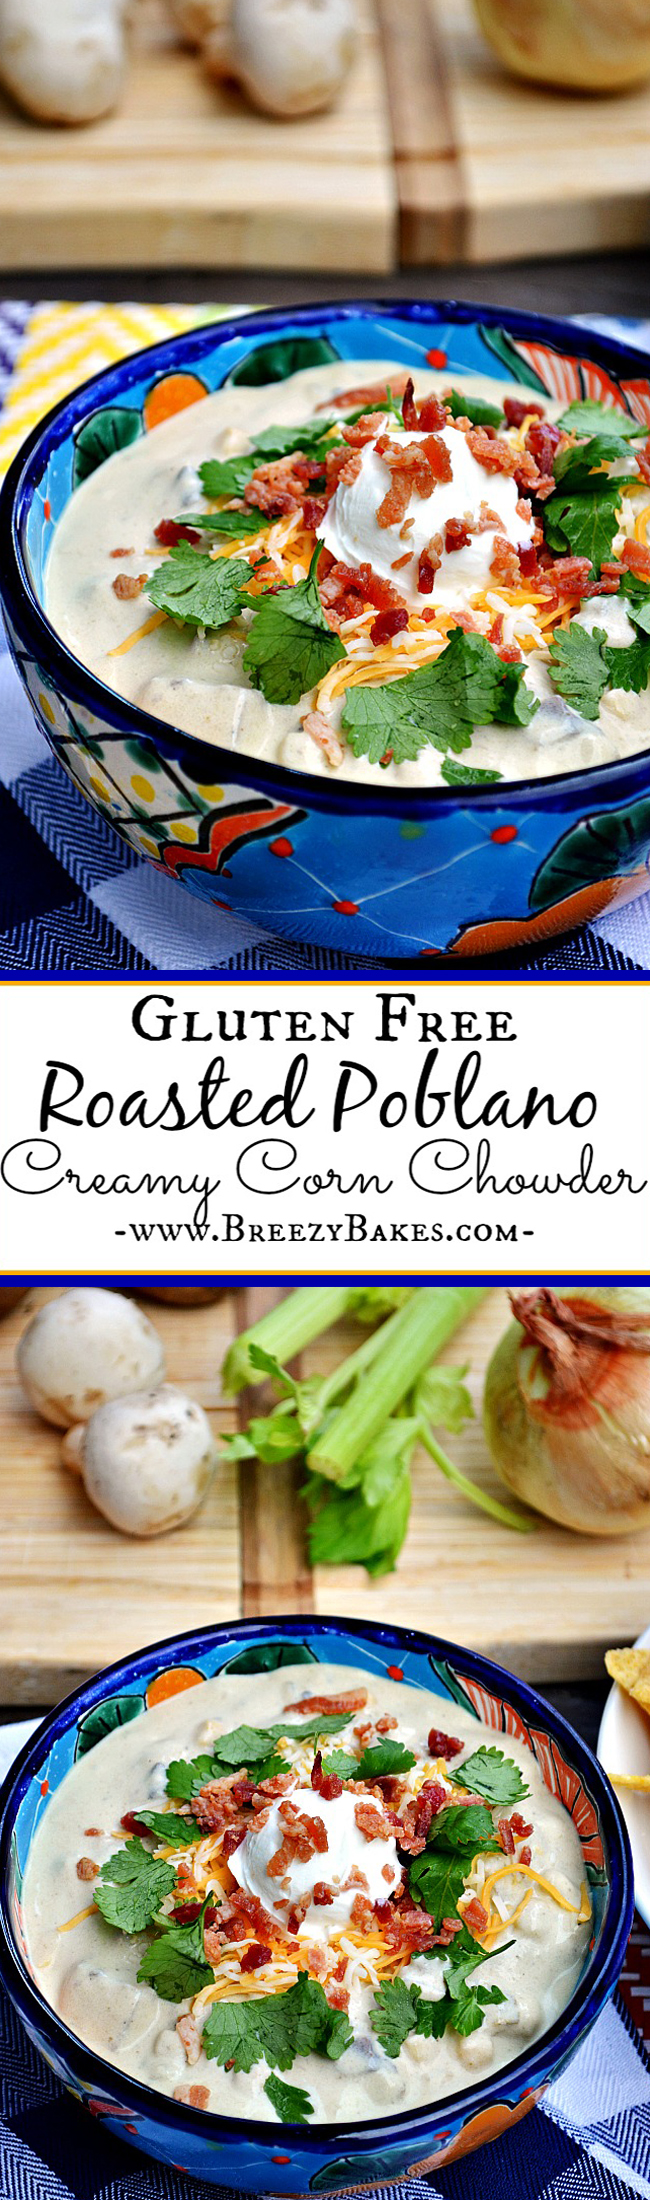 End a long day with this soothing and slightly spicy Gluten Free Roasted Poblano Creamy Corn Chowder. And then enjoy it day after day after day because it just keeps getting better.